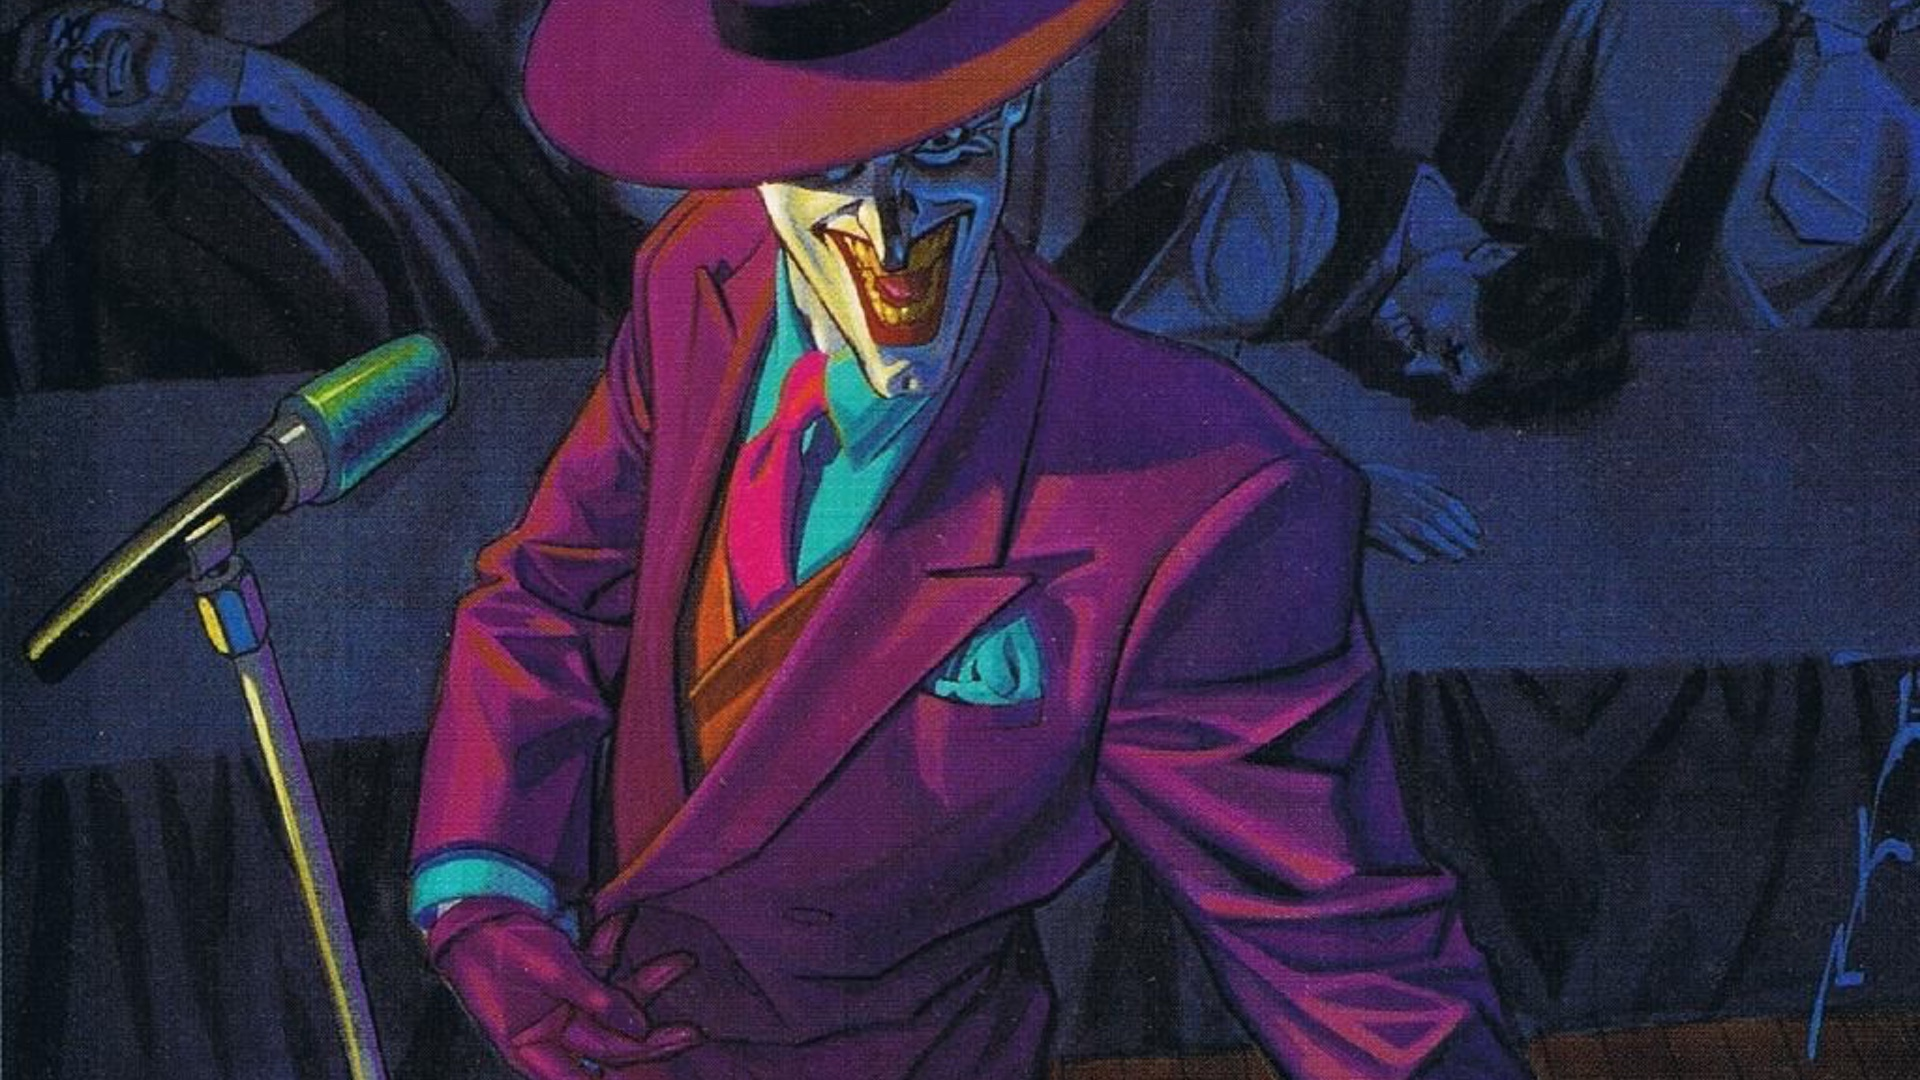 new-story-details-surface-for-joaquin-phoenixs-joker-including-his-real-name-and-family-social.jpg